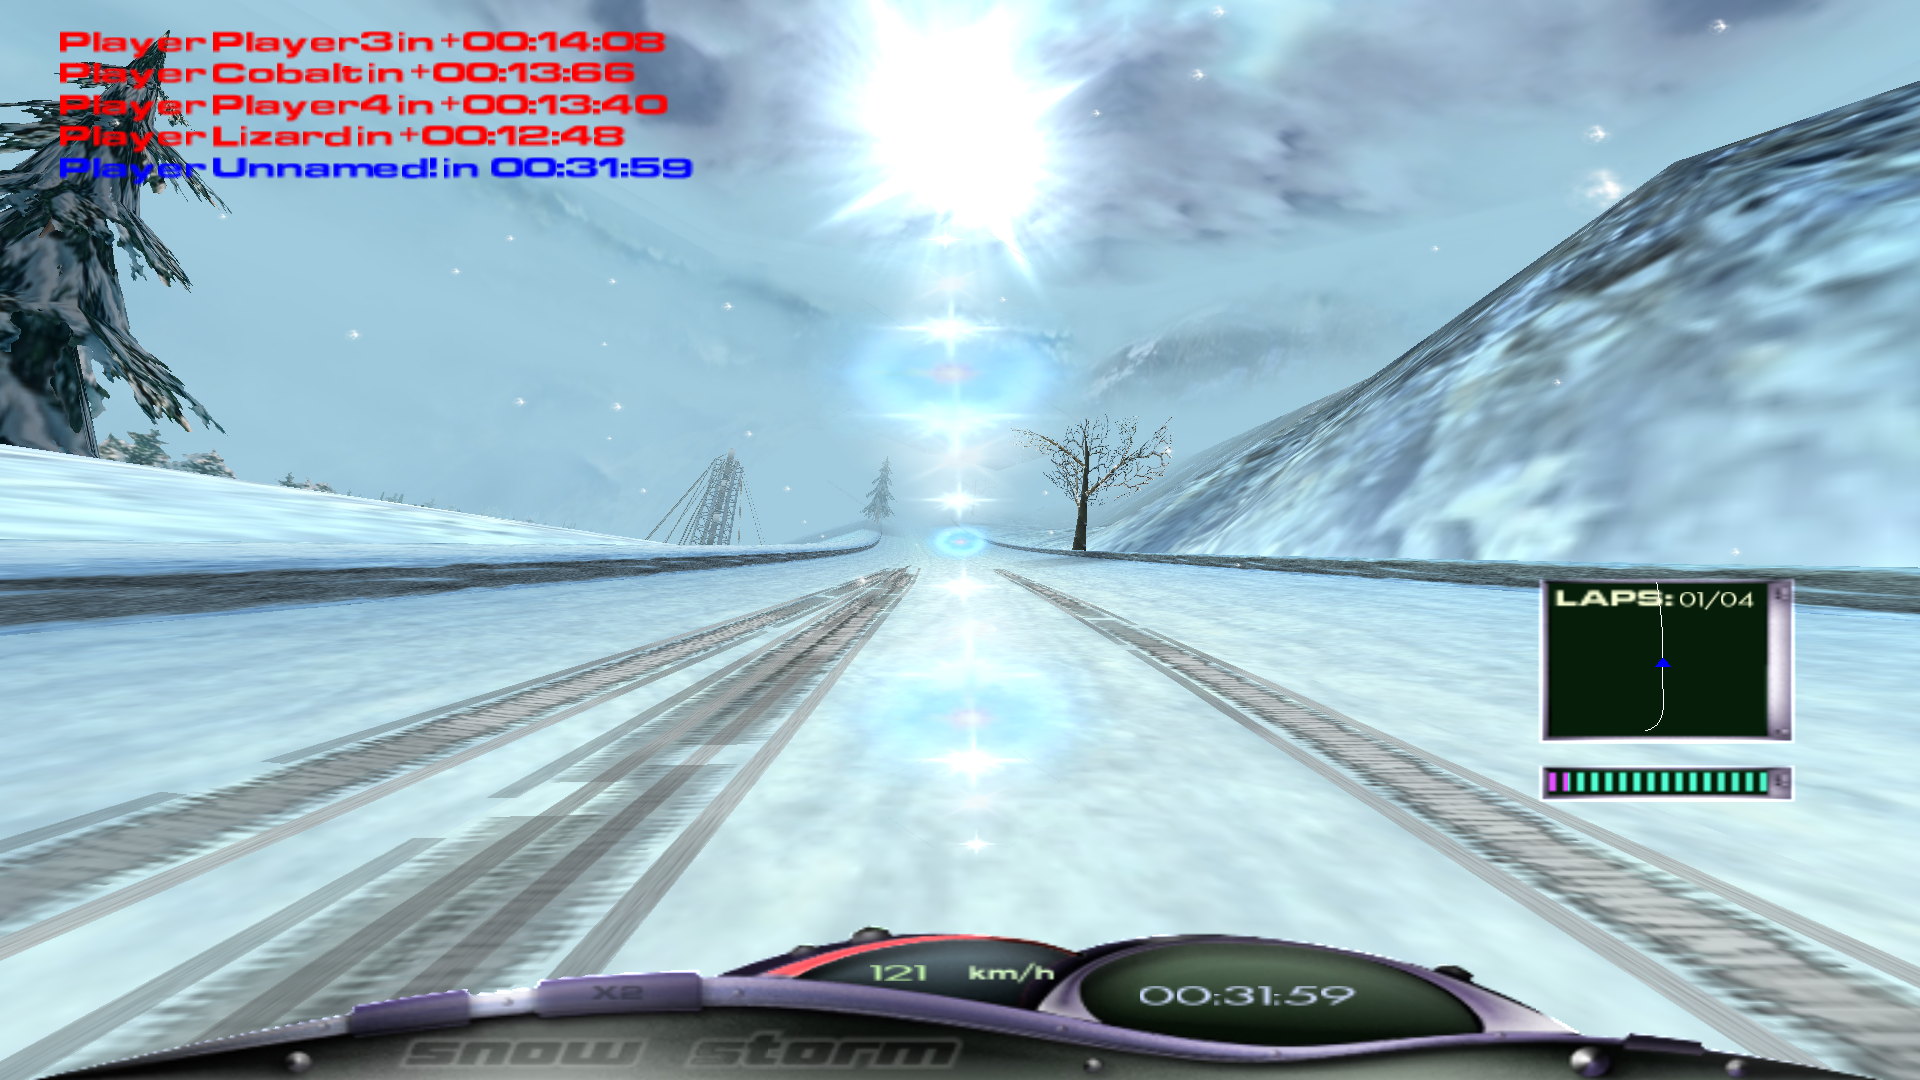 Snow Storm Windows The sun in our face on the track Gotha Serpentine (first-person perspective, full screen, 1920x1080)